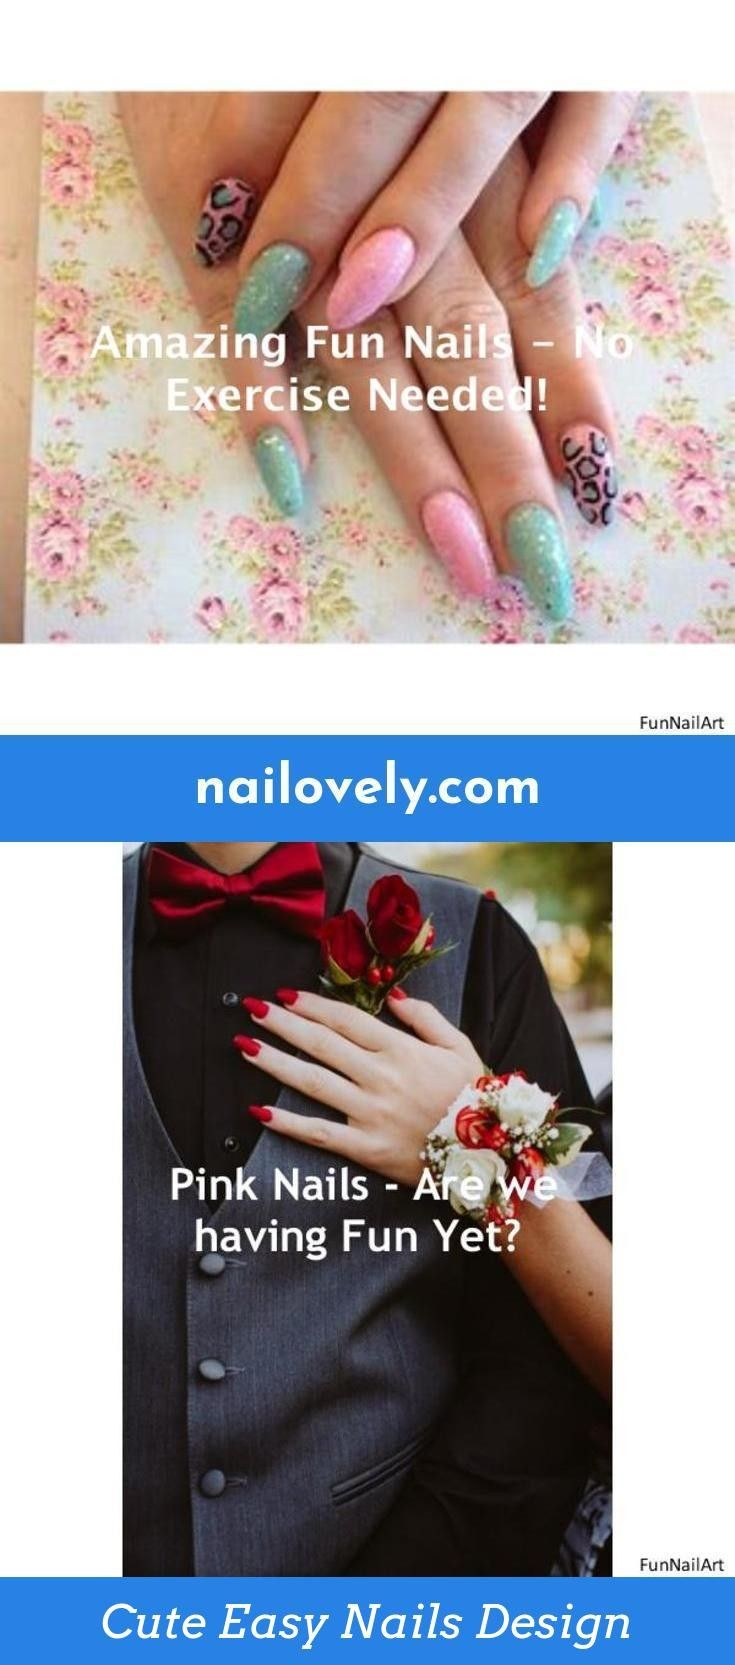 Accent nail designs different nail designs pinterest nails